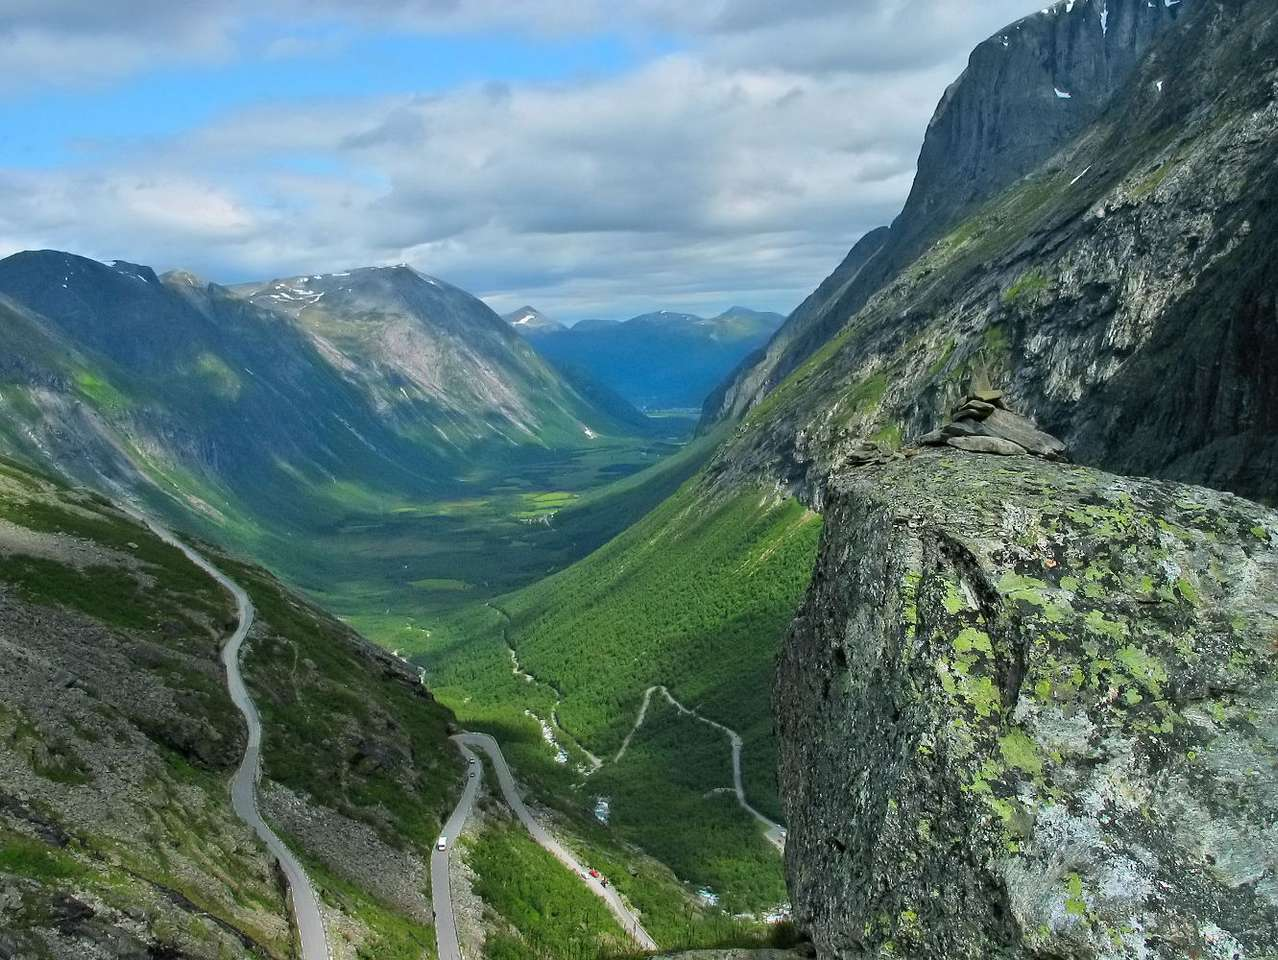 Isterdalen Valley and Trollstigen (Norway) - Trollstigen (means Troll Ladder) is a picturesque, mountain road connecting Isterdalen Valley and Valldal Valley in Norway. Road's steep incline is 9%. It is a popular tourist attraction due to eleven (11×8)